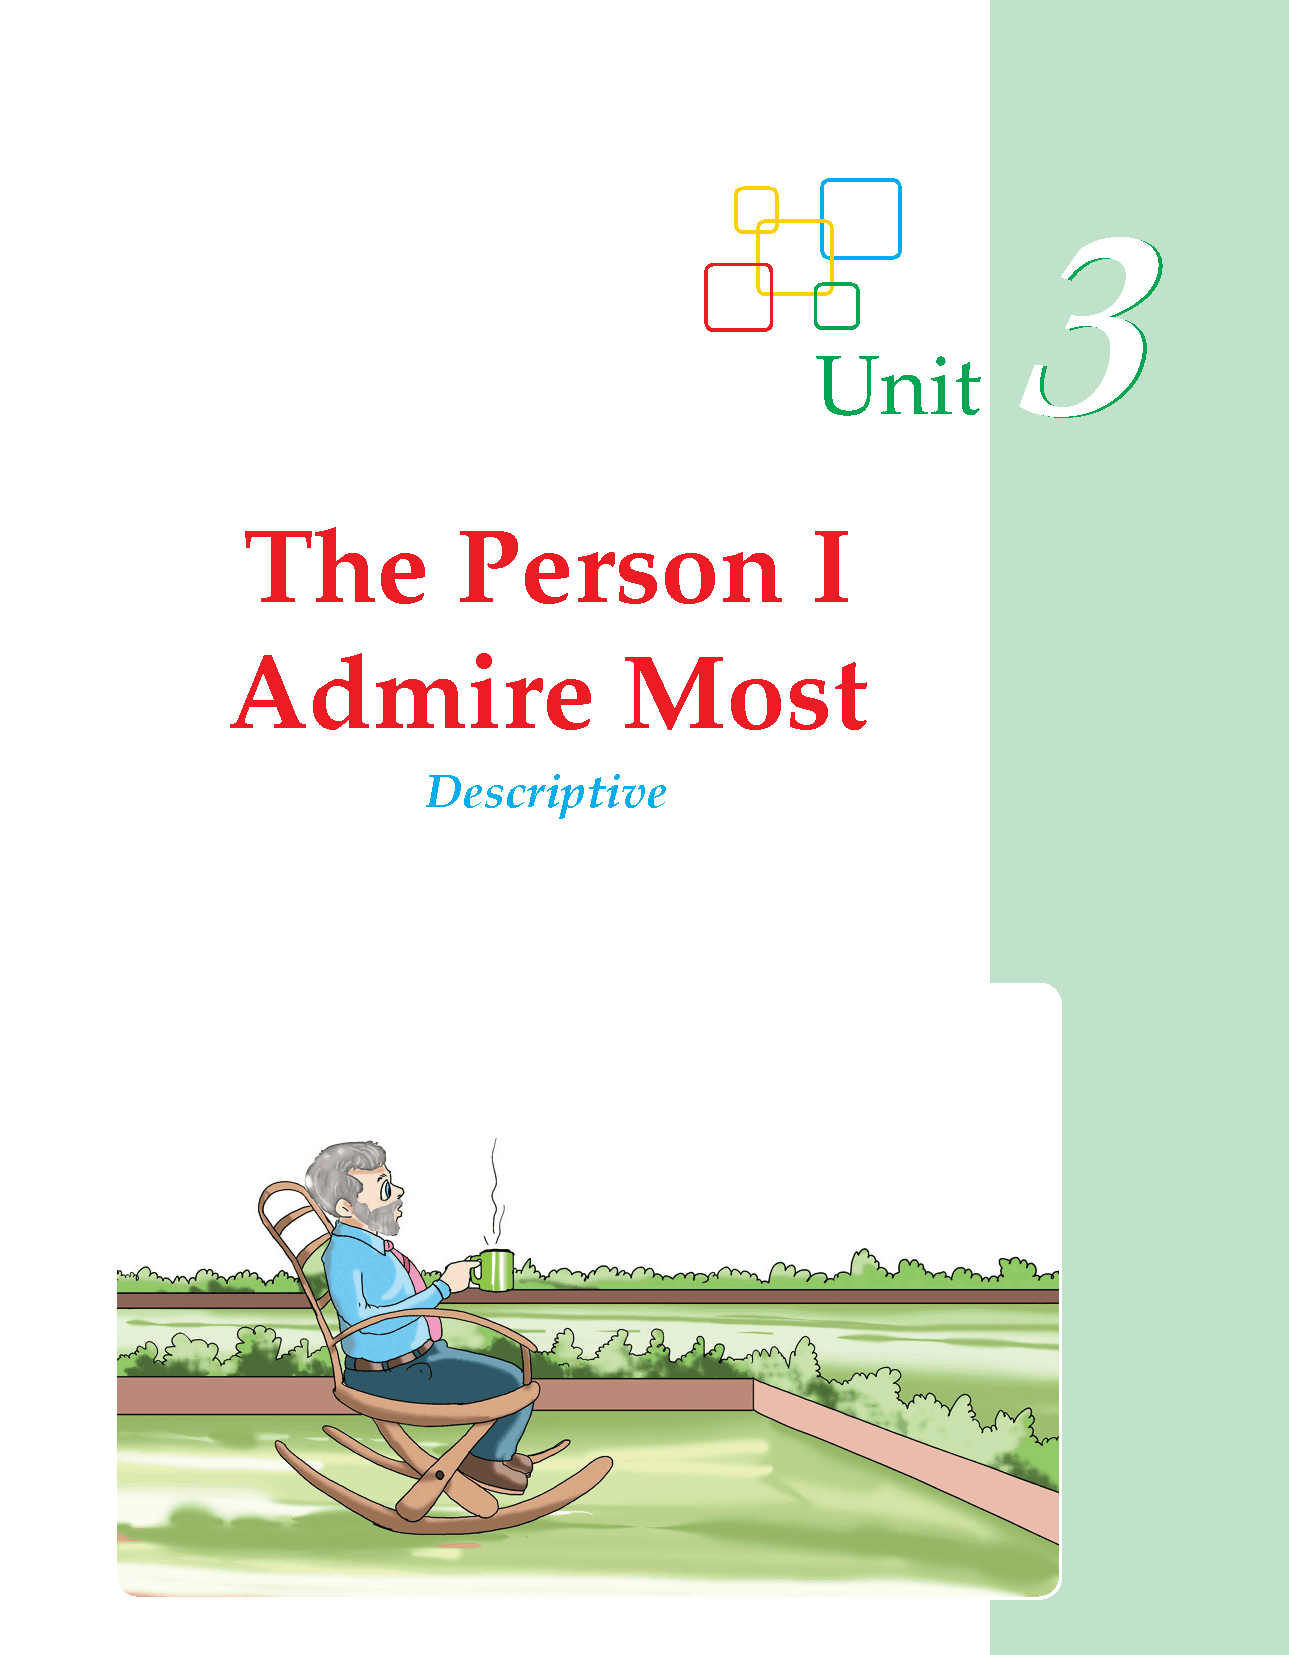 grade 3 descriptive essay the person i admire most composition writing skill grade 3 the person i admire most 1